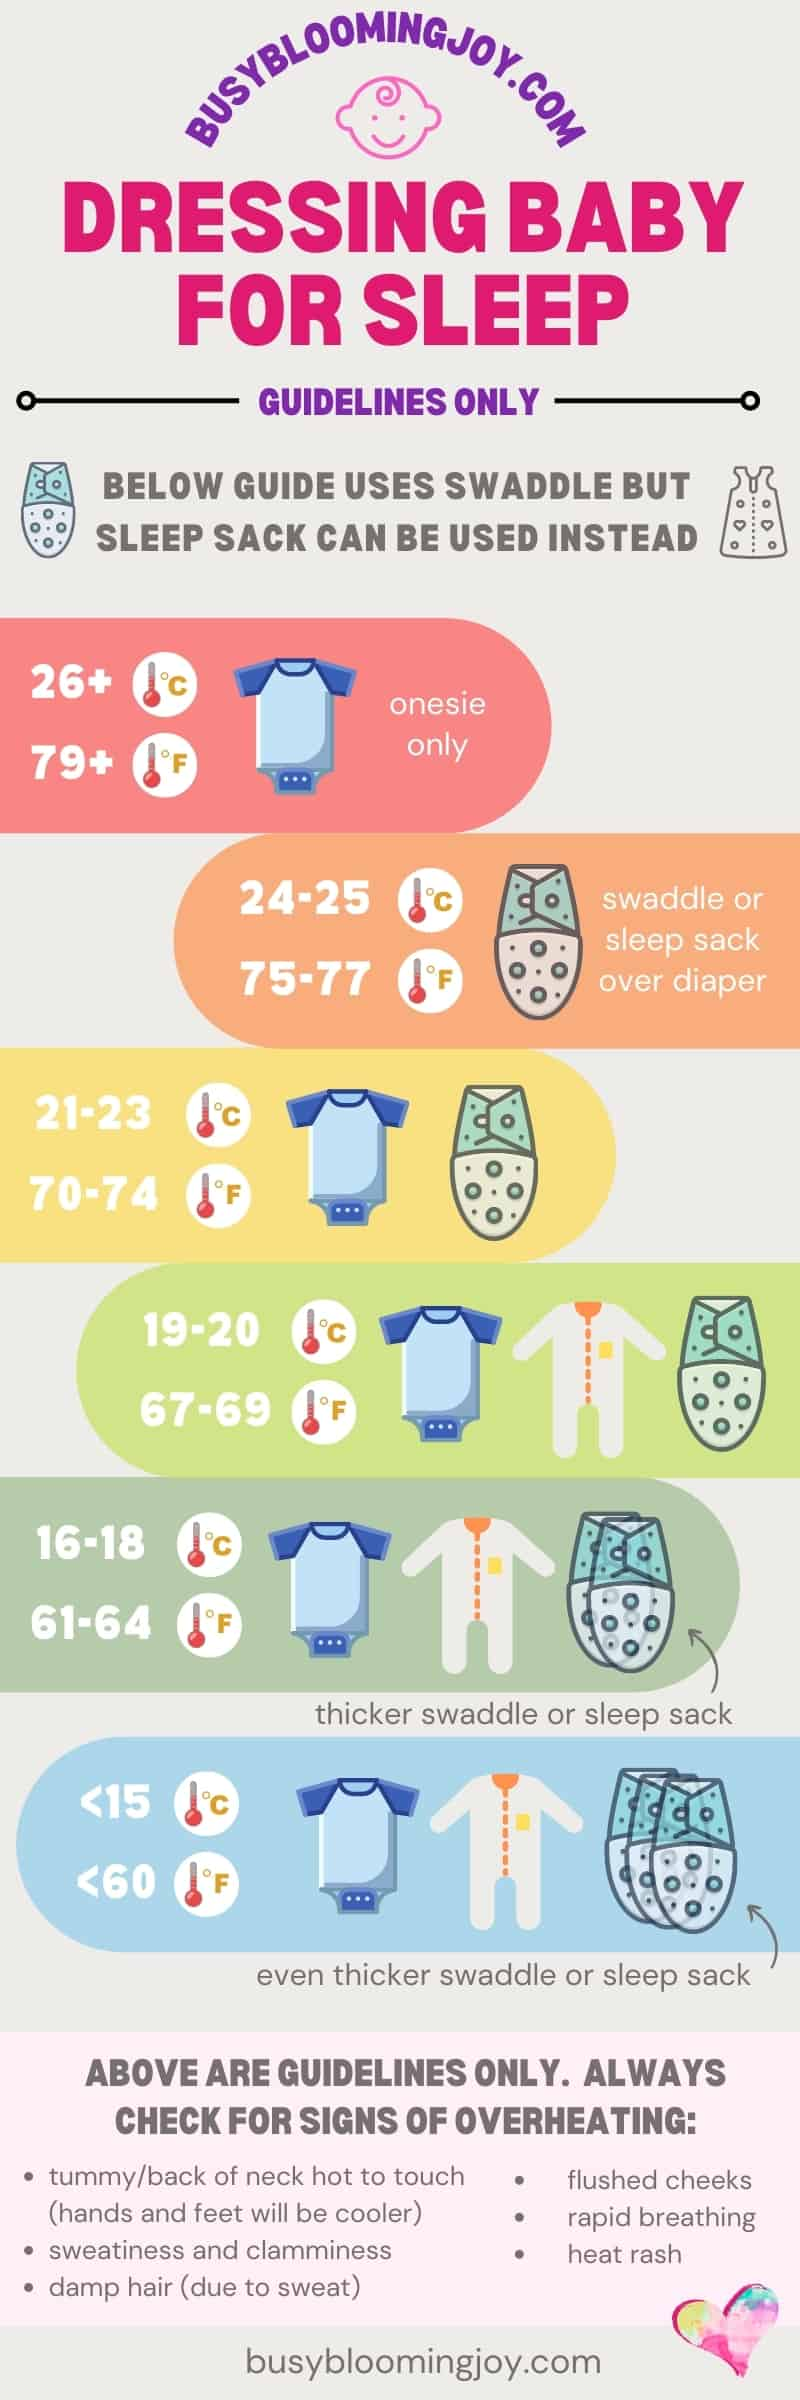 baby layering guide for what baby should wear to sleep in bed at night